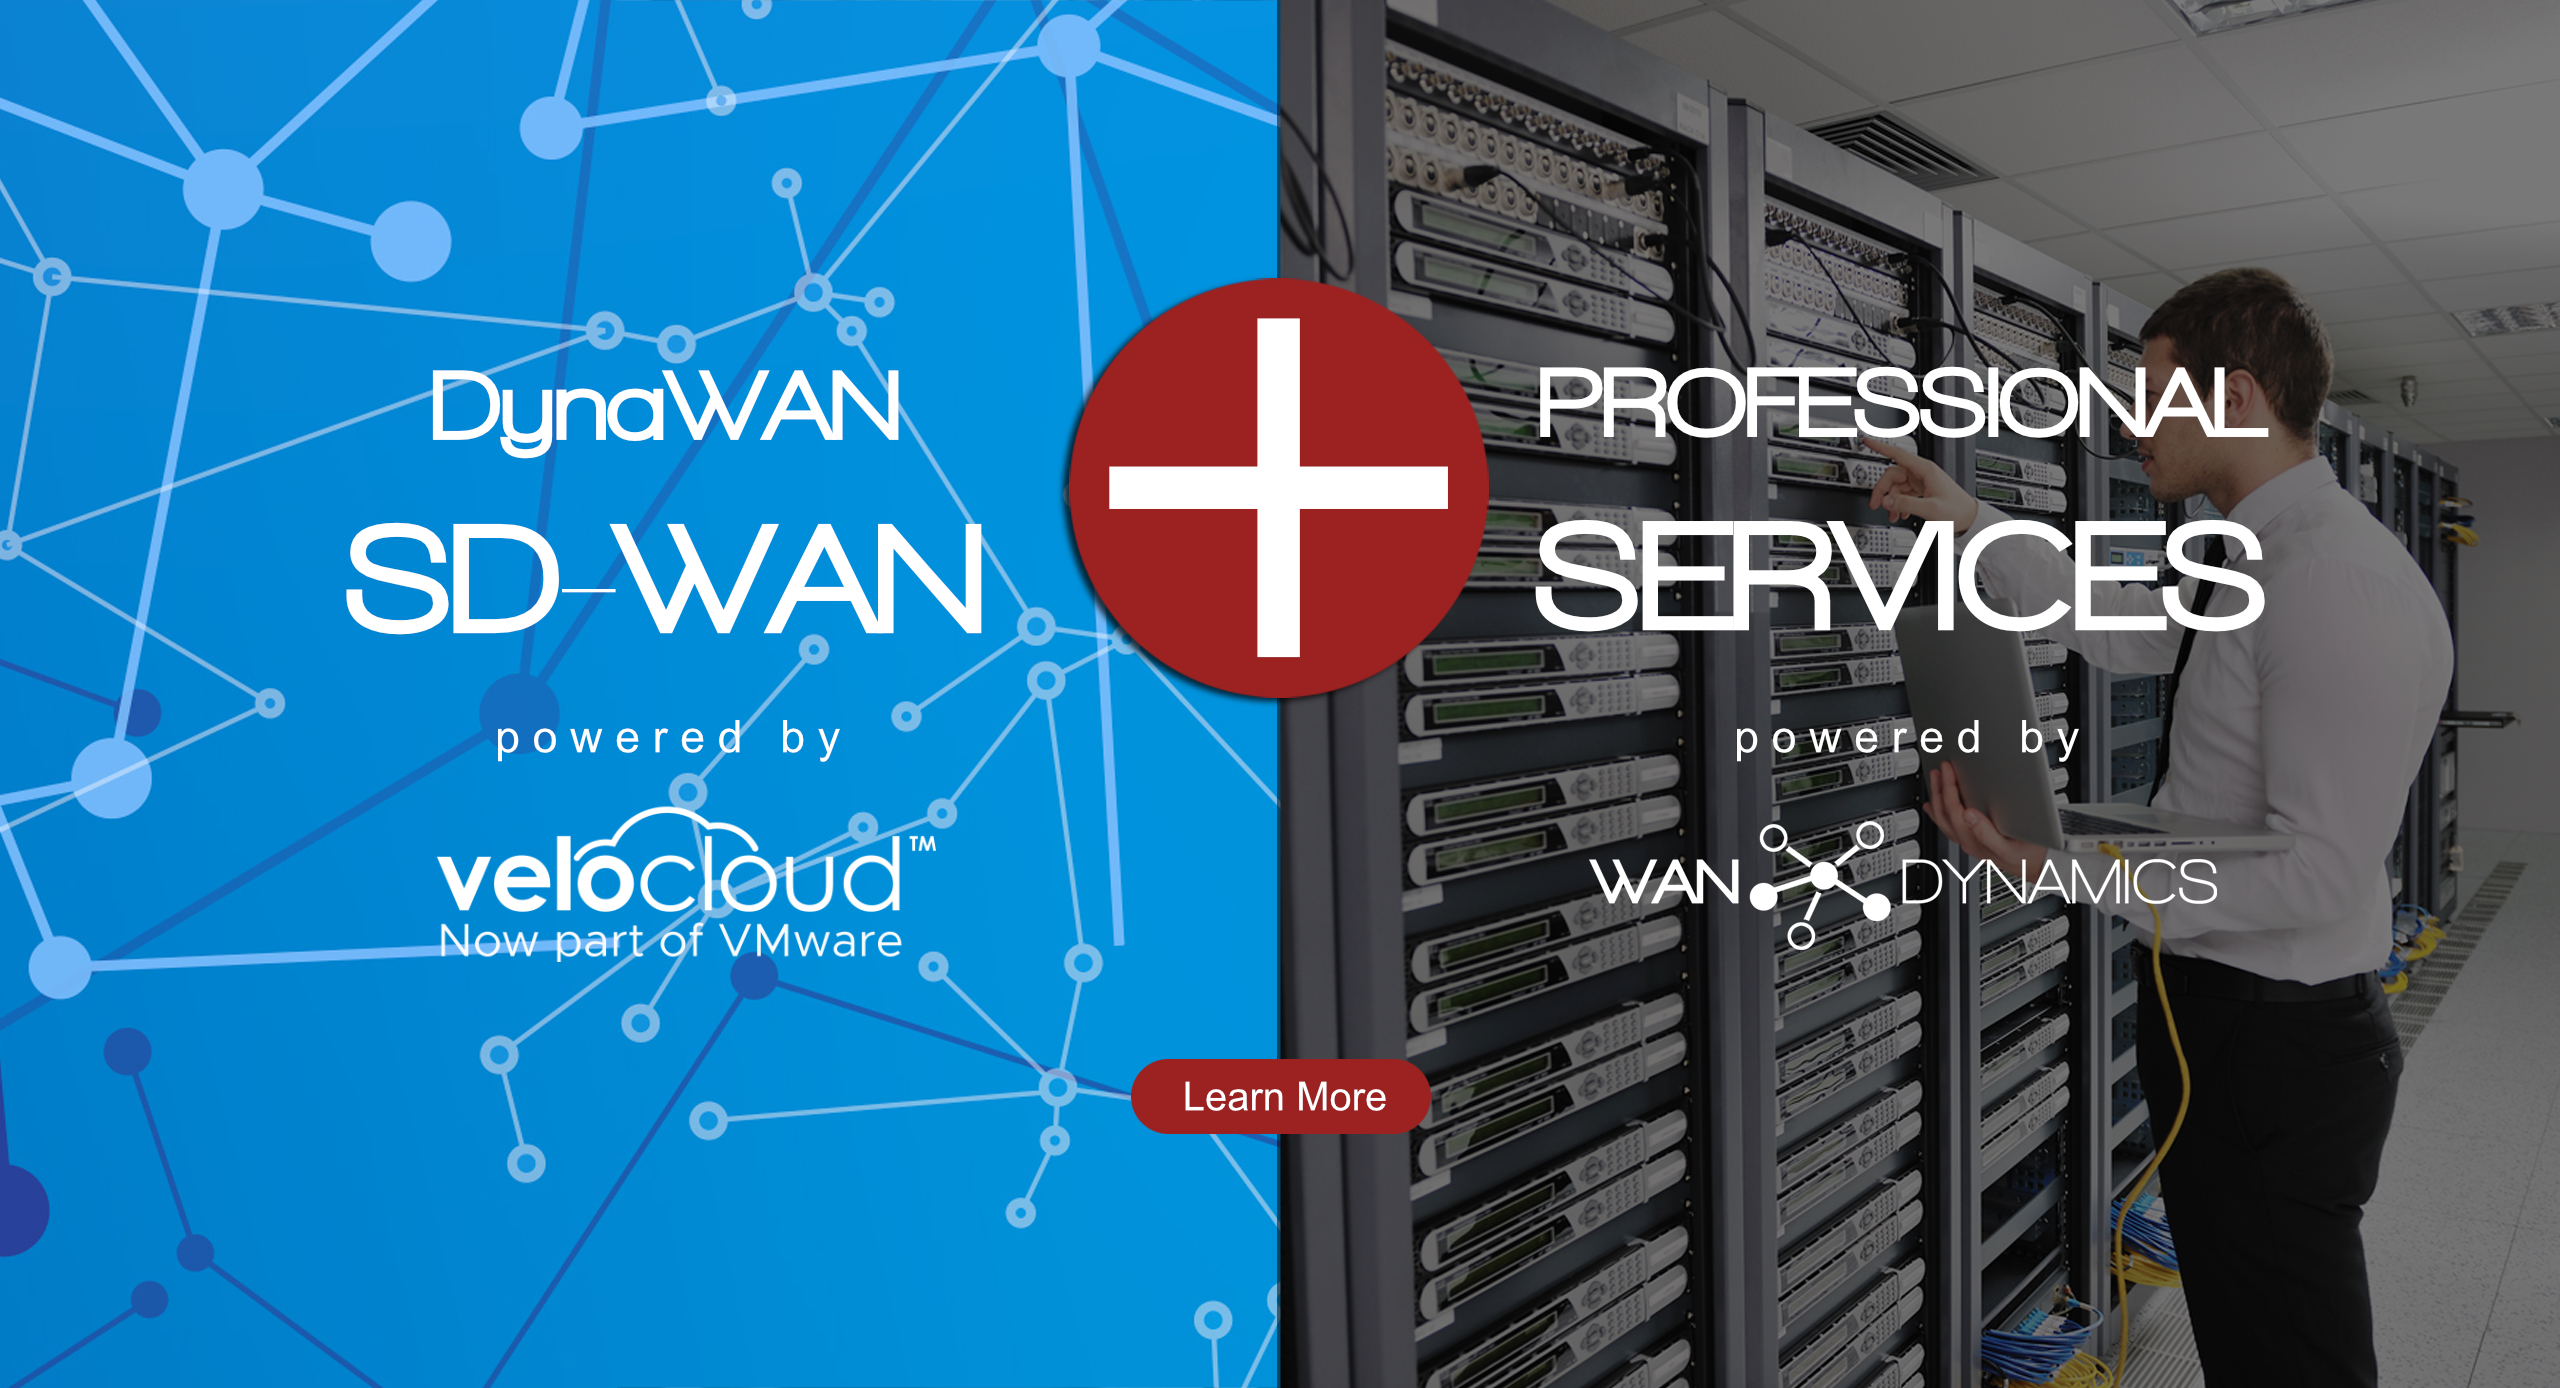 sd-wan-pro-services-1